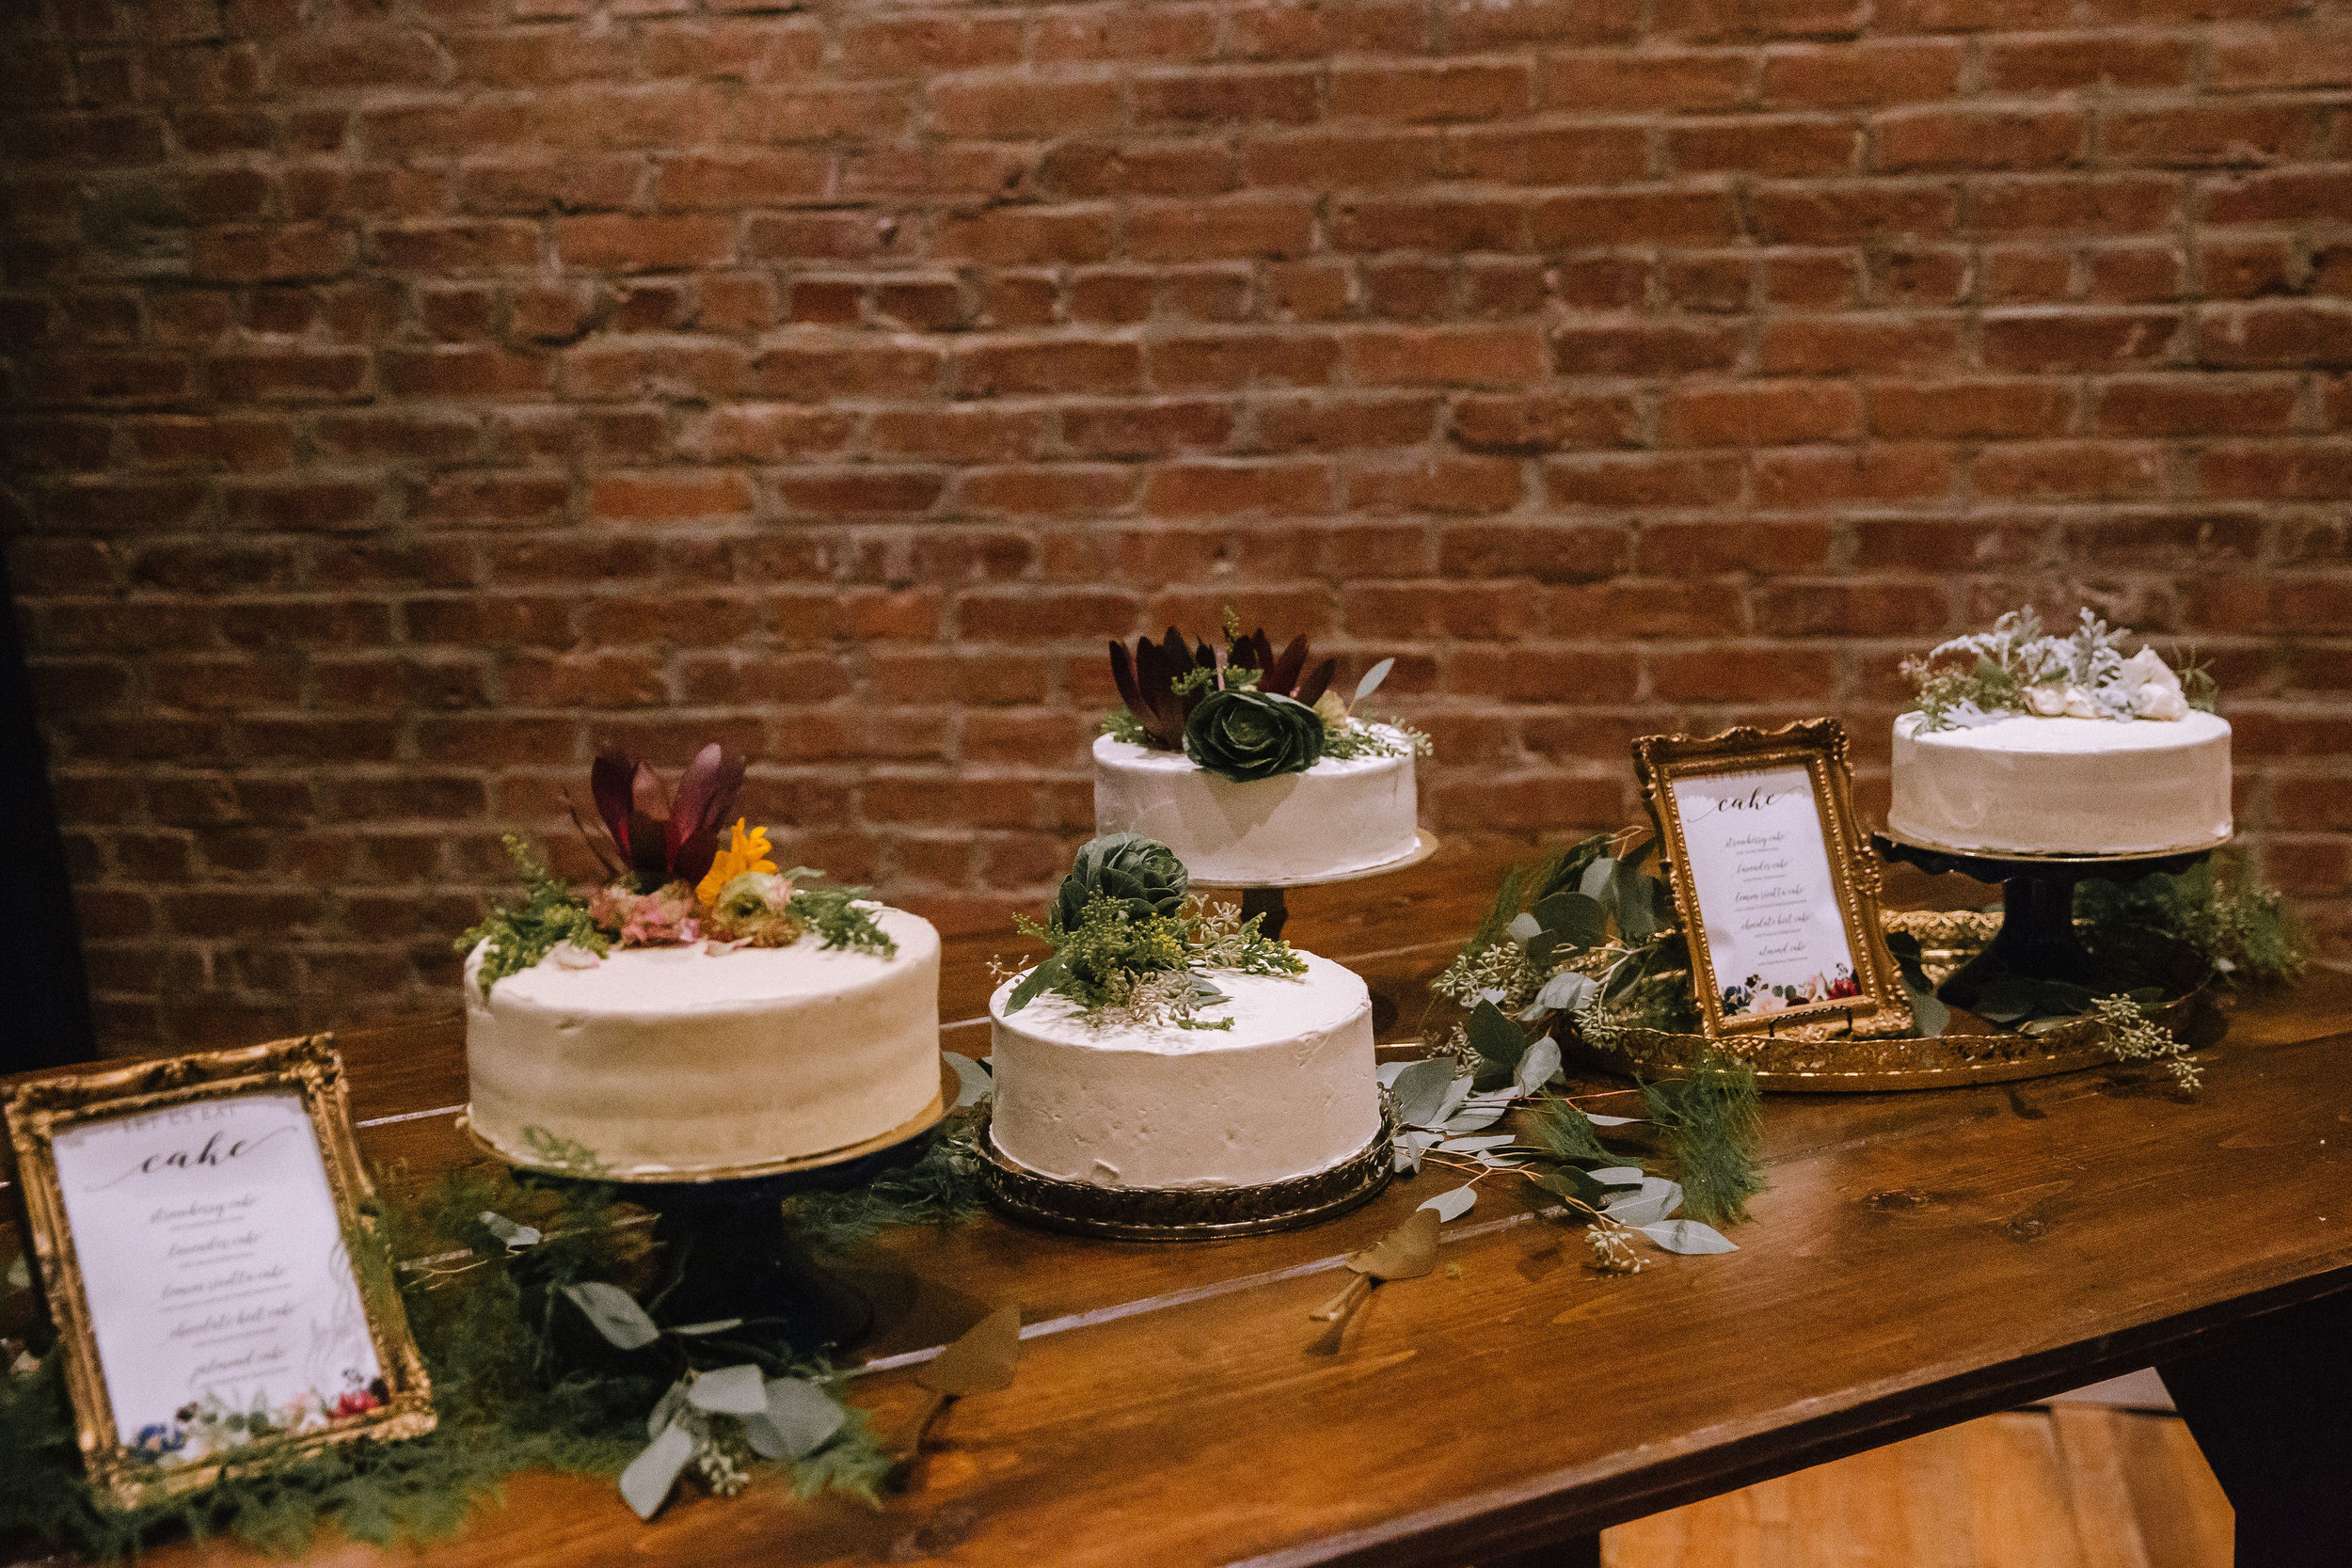 Multiple one-tier wedding cakes on wedding cake and dessert table for Pittsburgh wedding at Studio Slate planned by Exhale Events. Find more wedding inspiration at exhale-events.com!